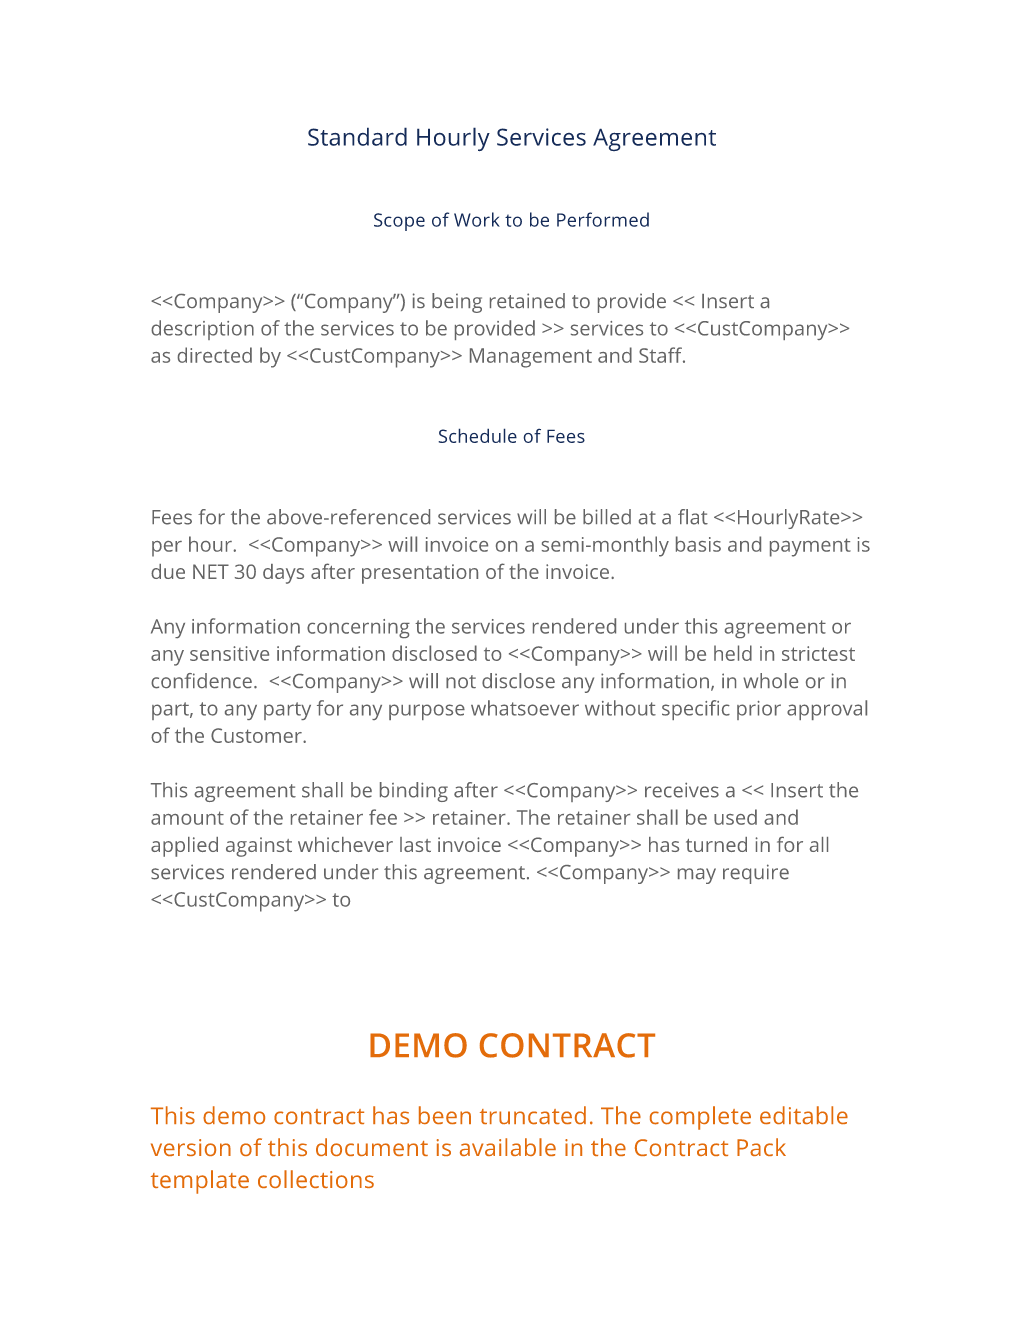 facilities management contract template - hourly services agreement 3 easy steps